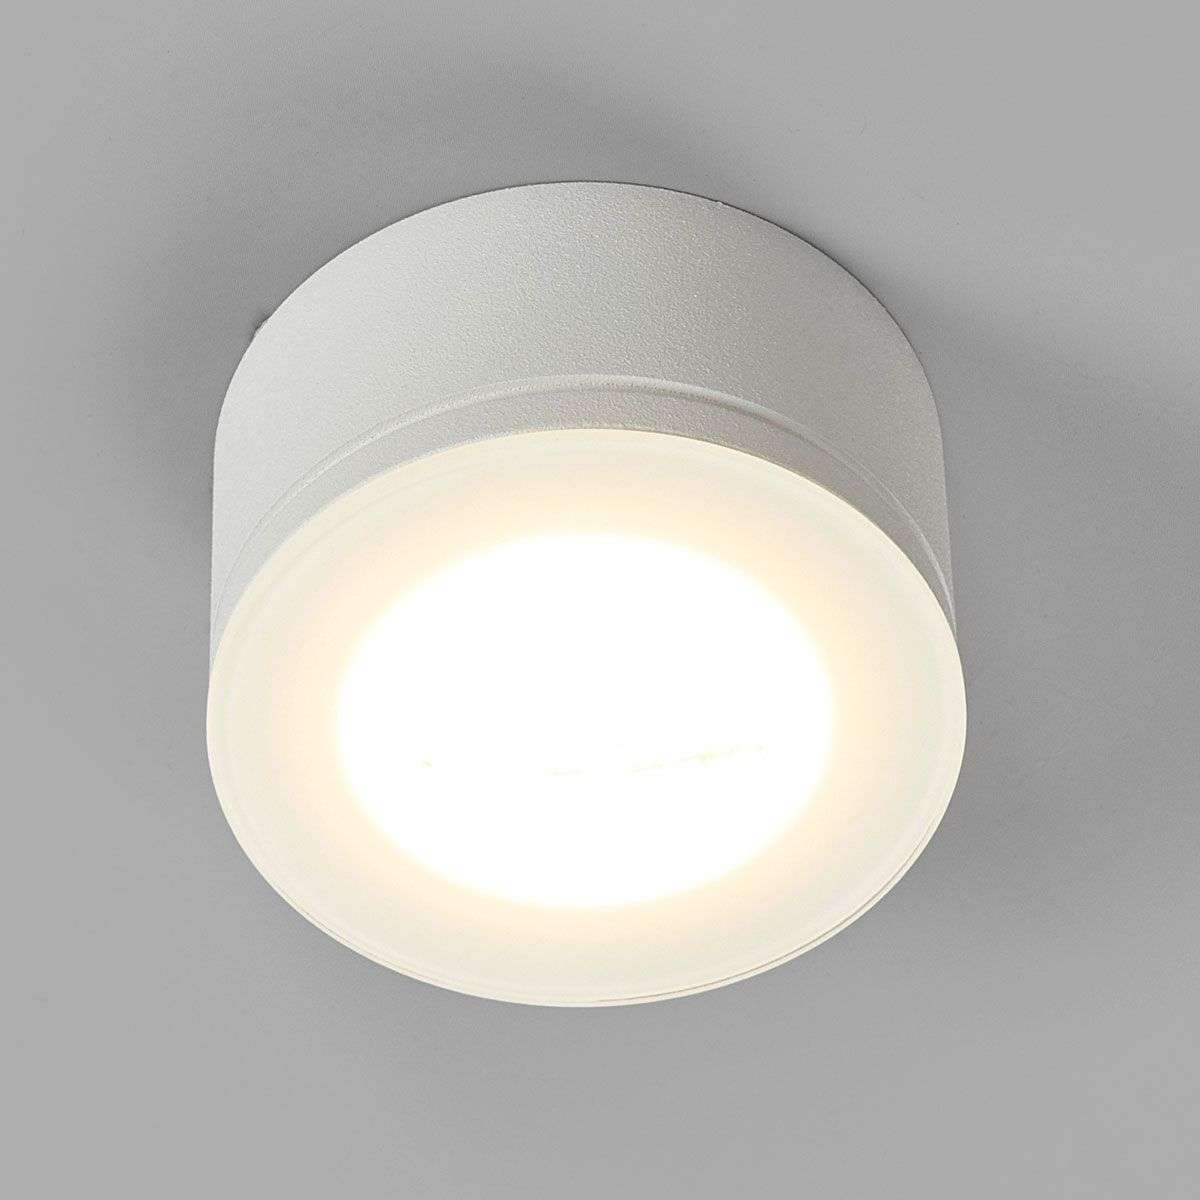 Newton 35 LED Ceiling Spotlight F Indoor And Outdoor 3023104 32